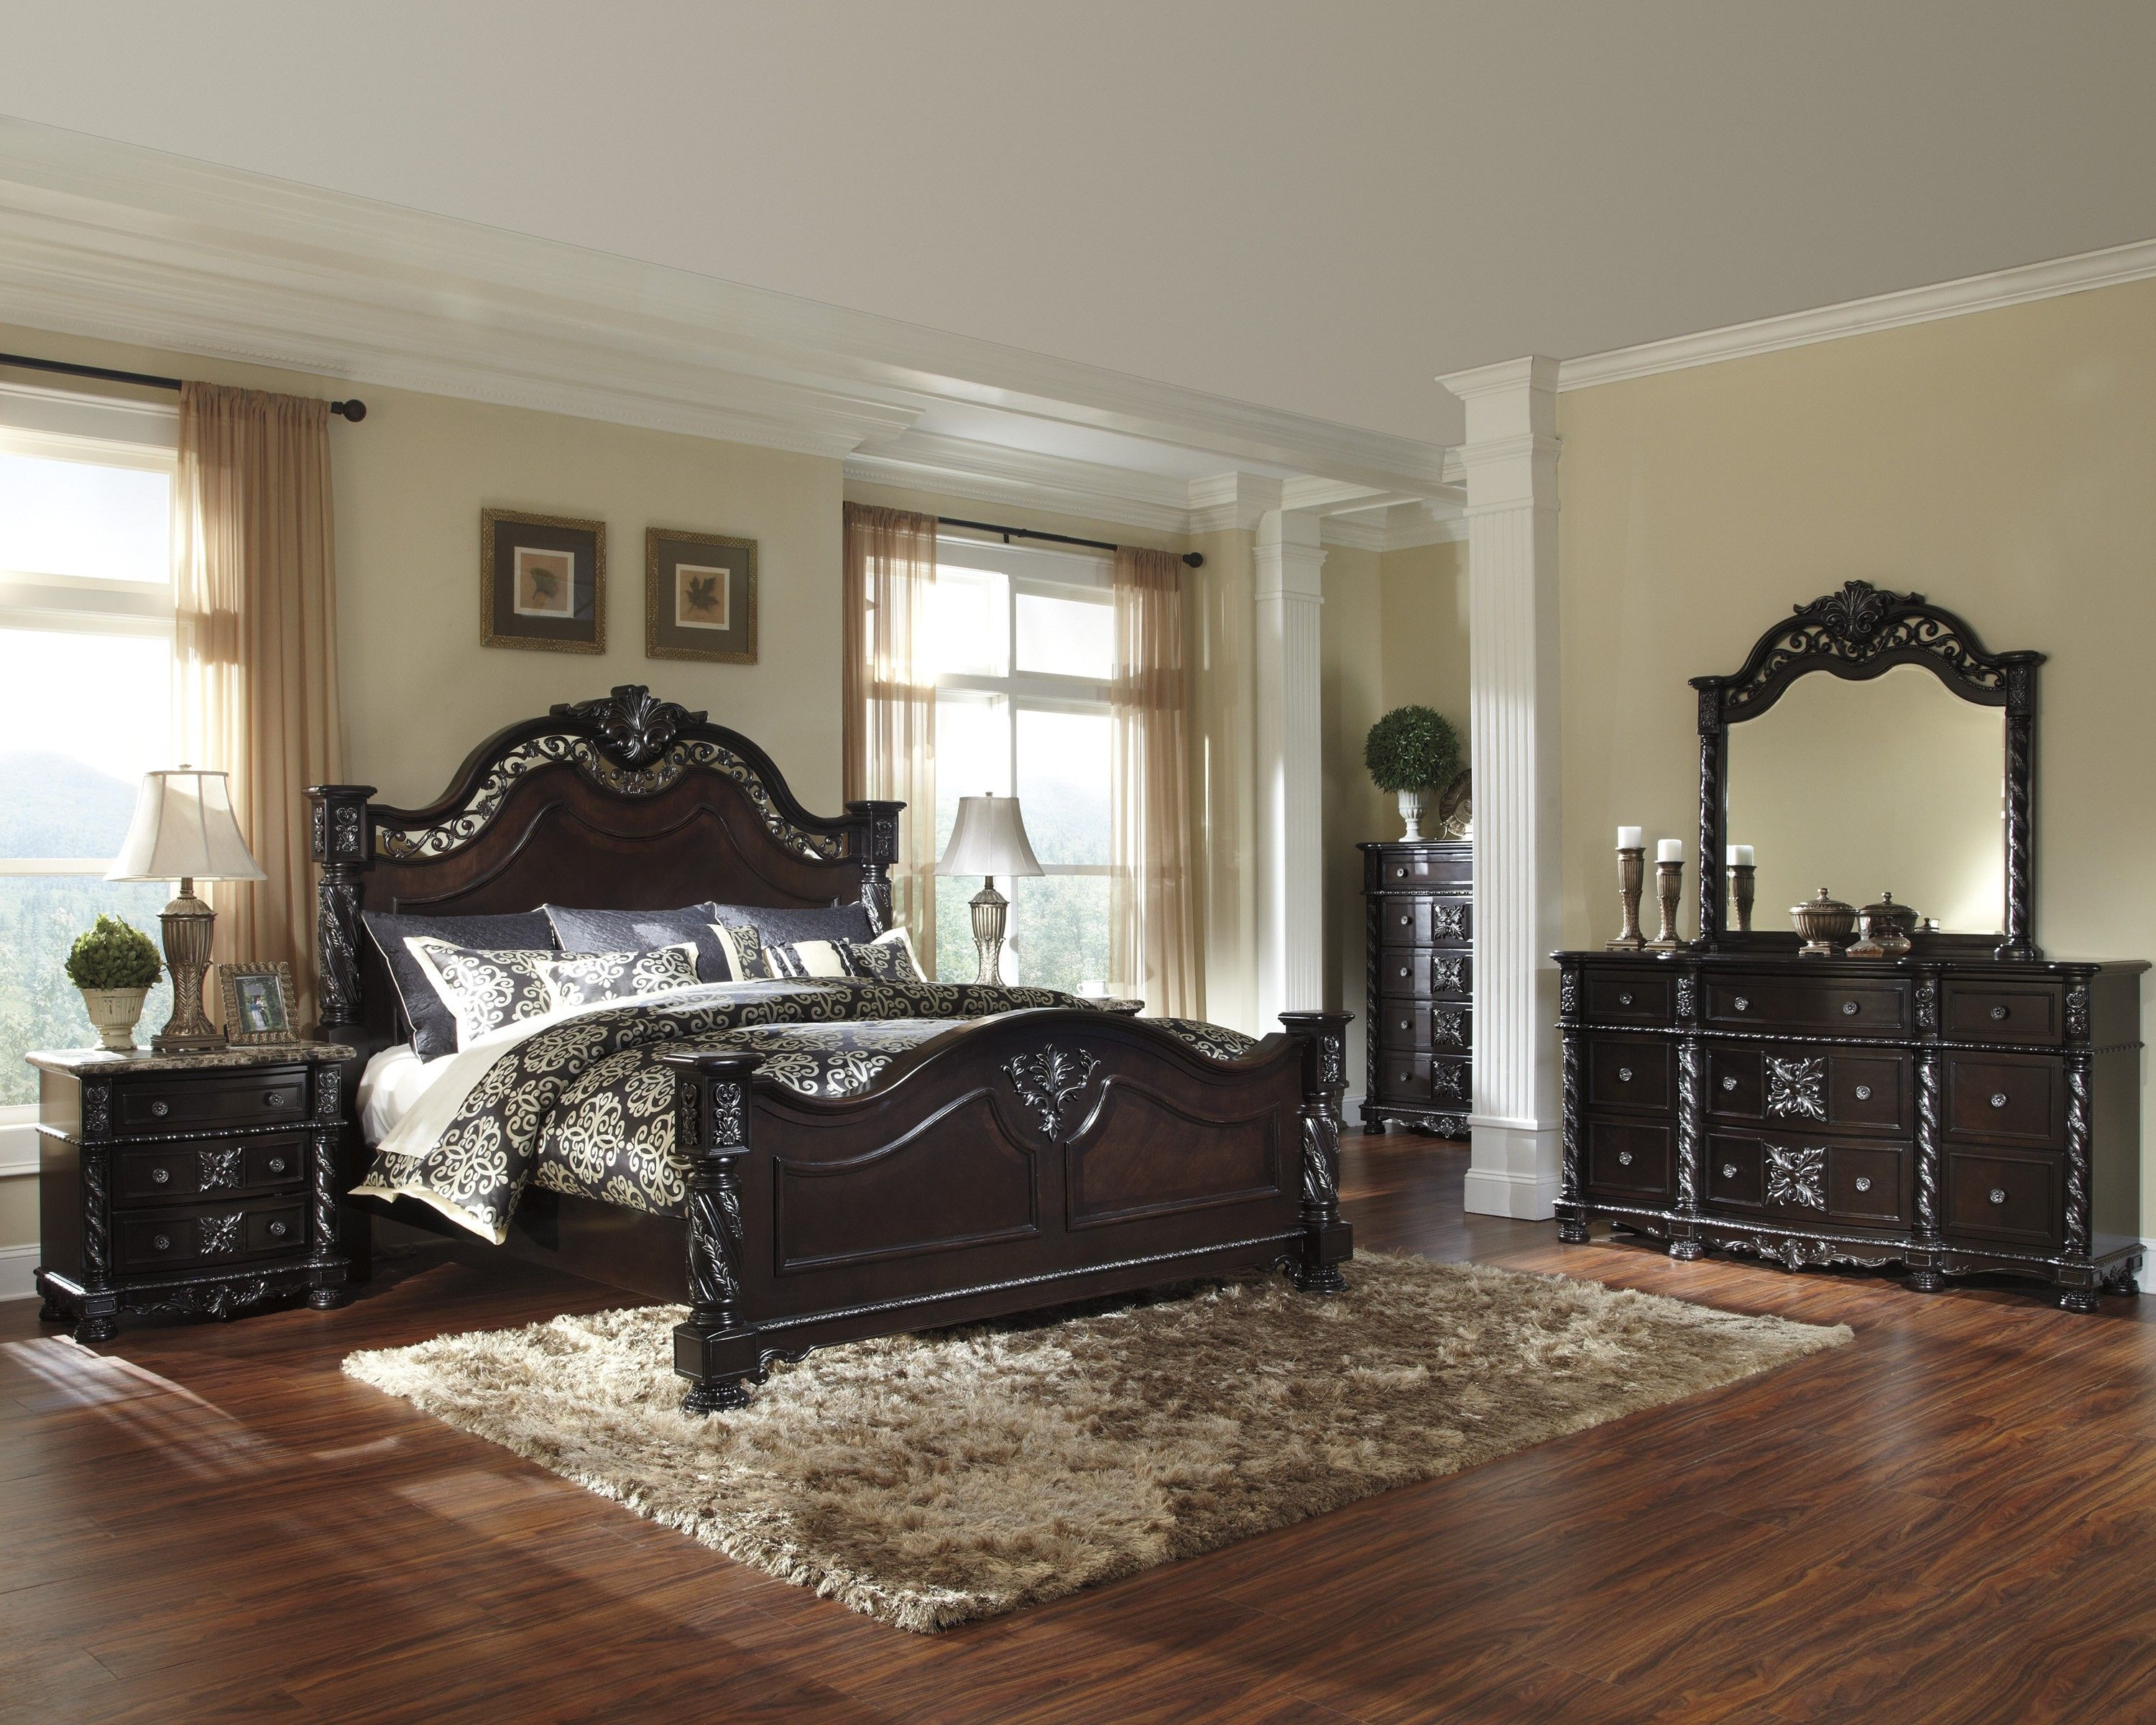 Buy Mattiner Bedroom Set By Millennium From 3300 Bedroom Pinterest